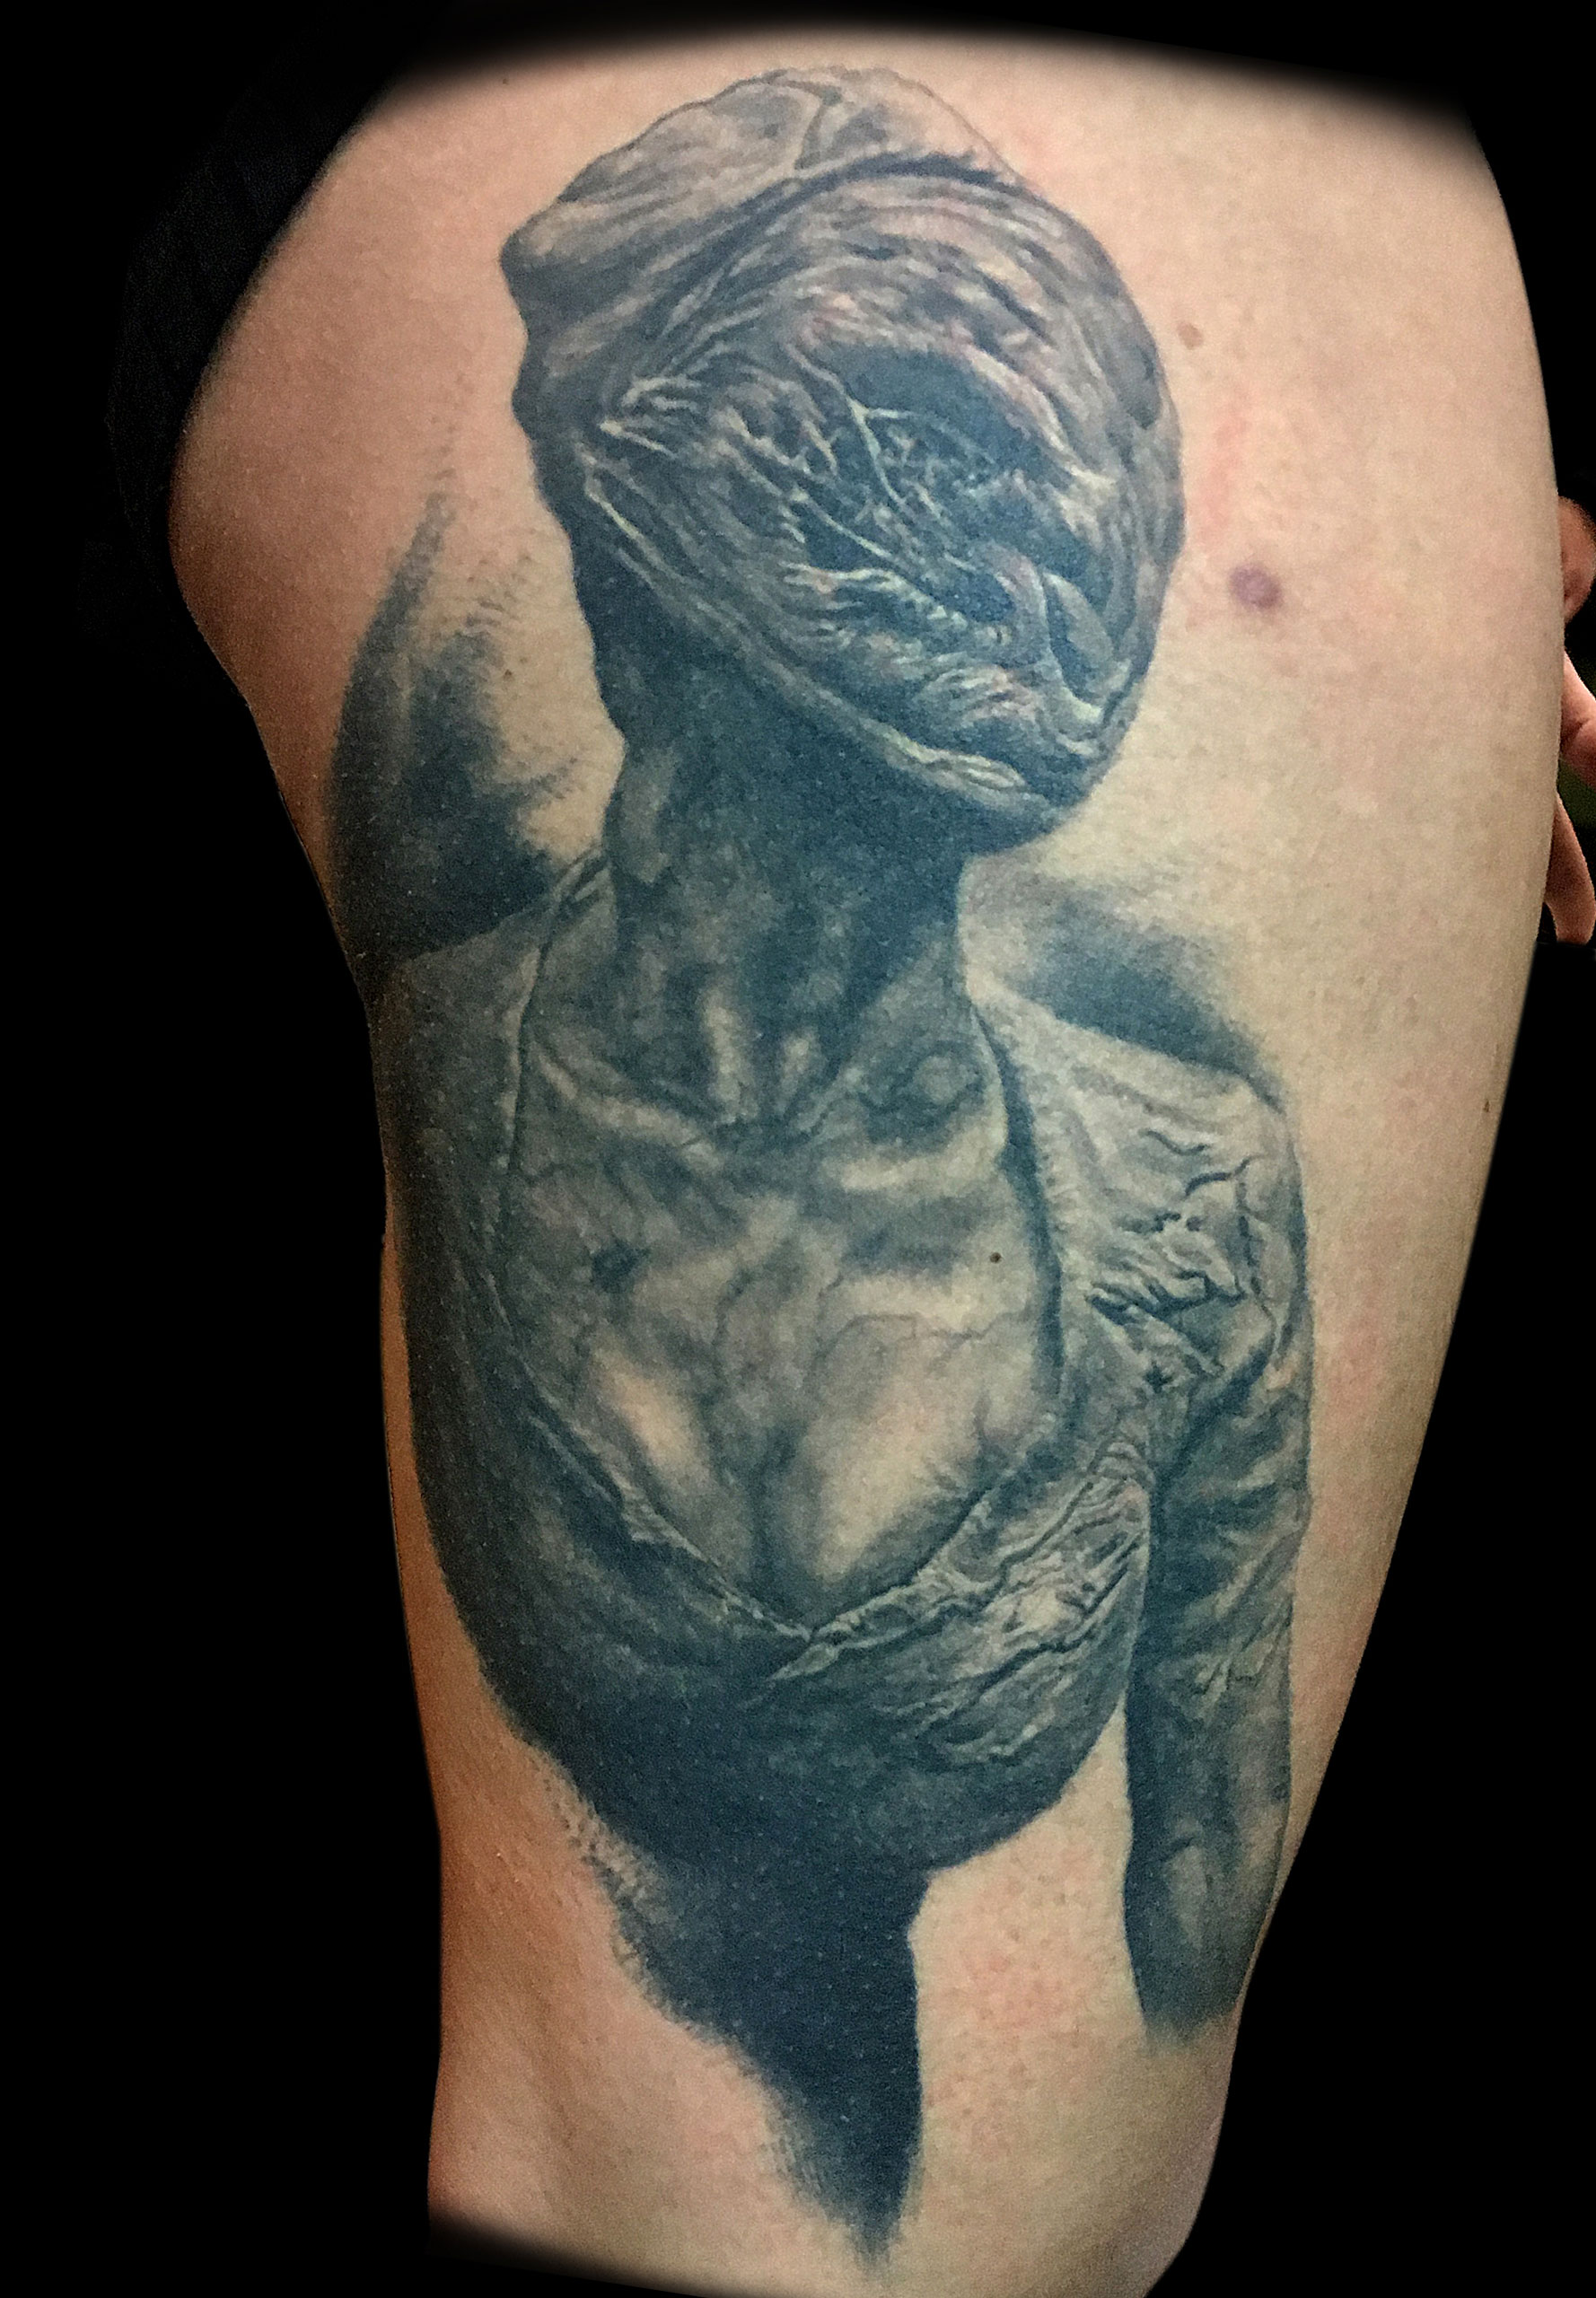 Black and Grey Silent Hill Nurse Horror Portrait Tattoo, (healed) Le Mondial du Tatouage Convention, Paris, France